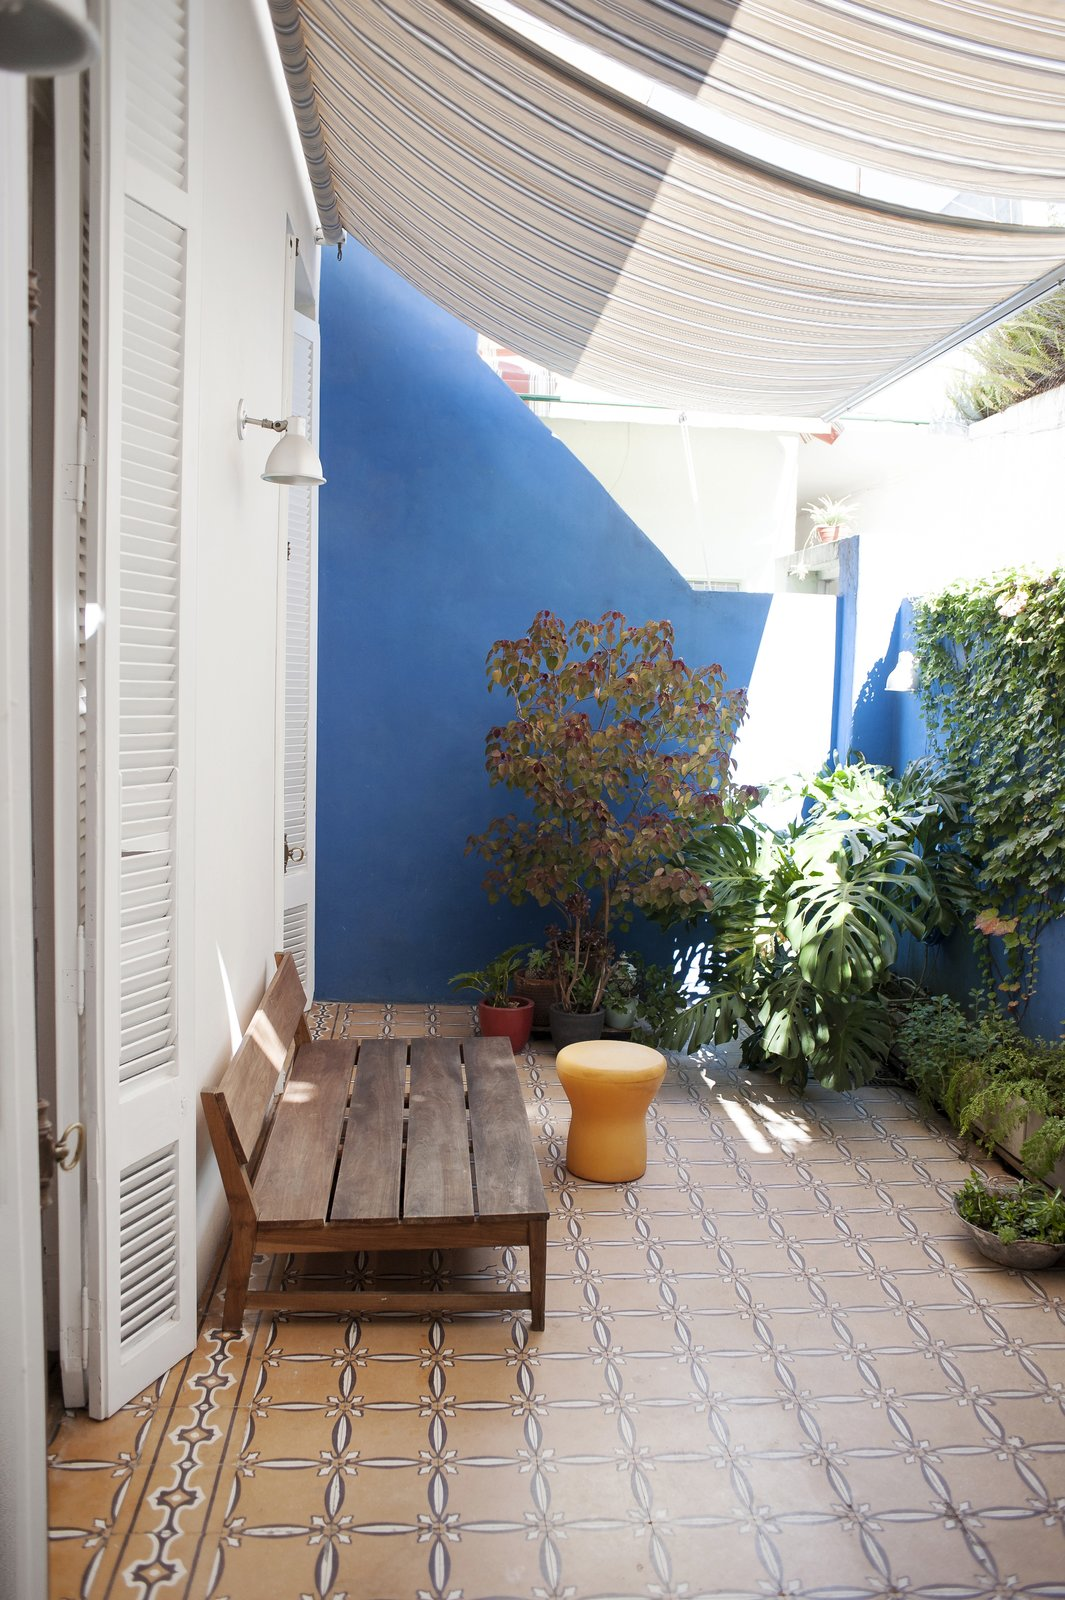 The petiribi wood bench,  the sunshades and the plants over the blue walls set up a unique atmosphere.  Artigas